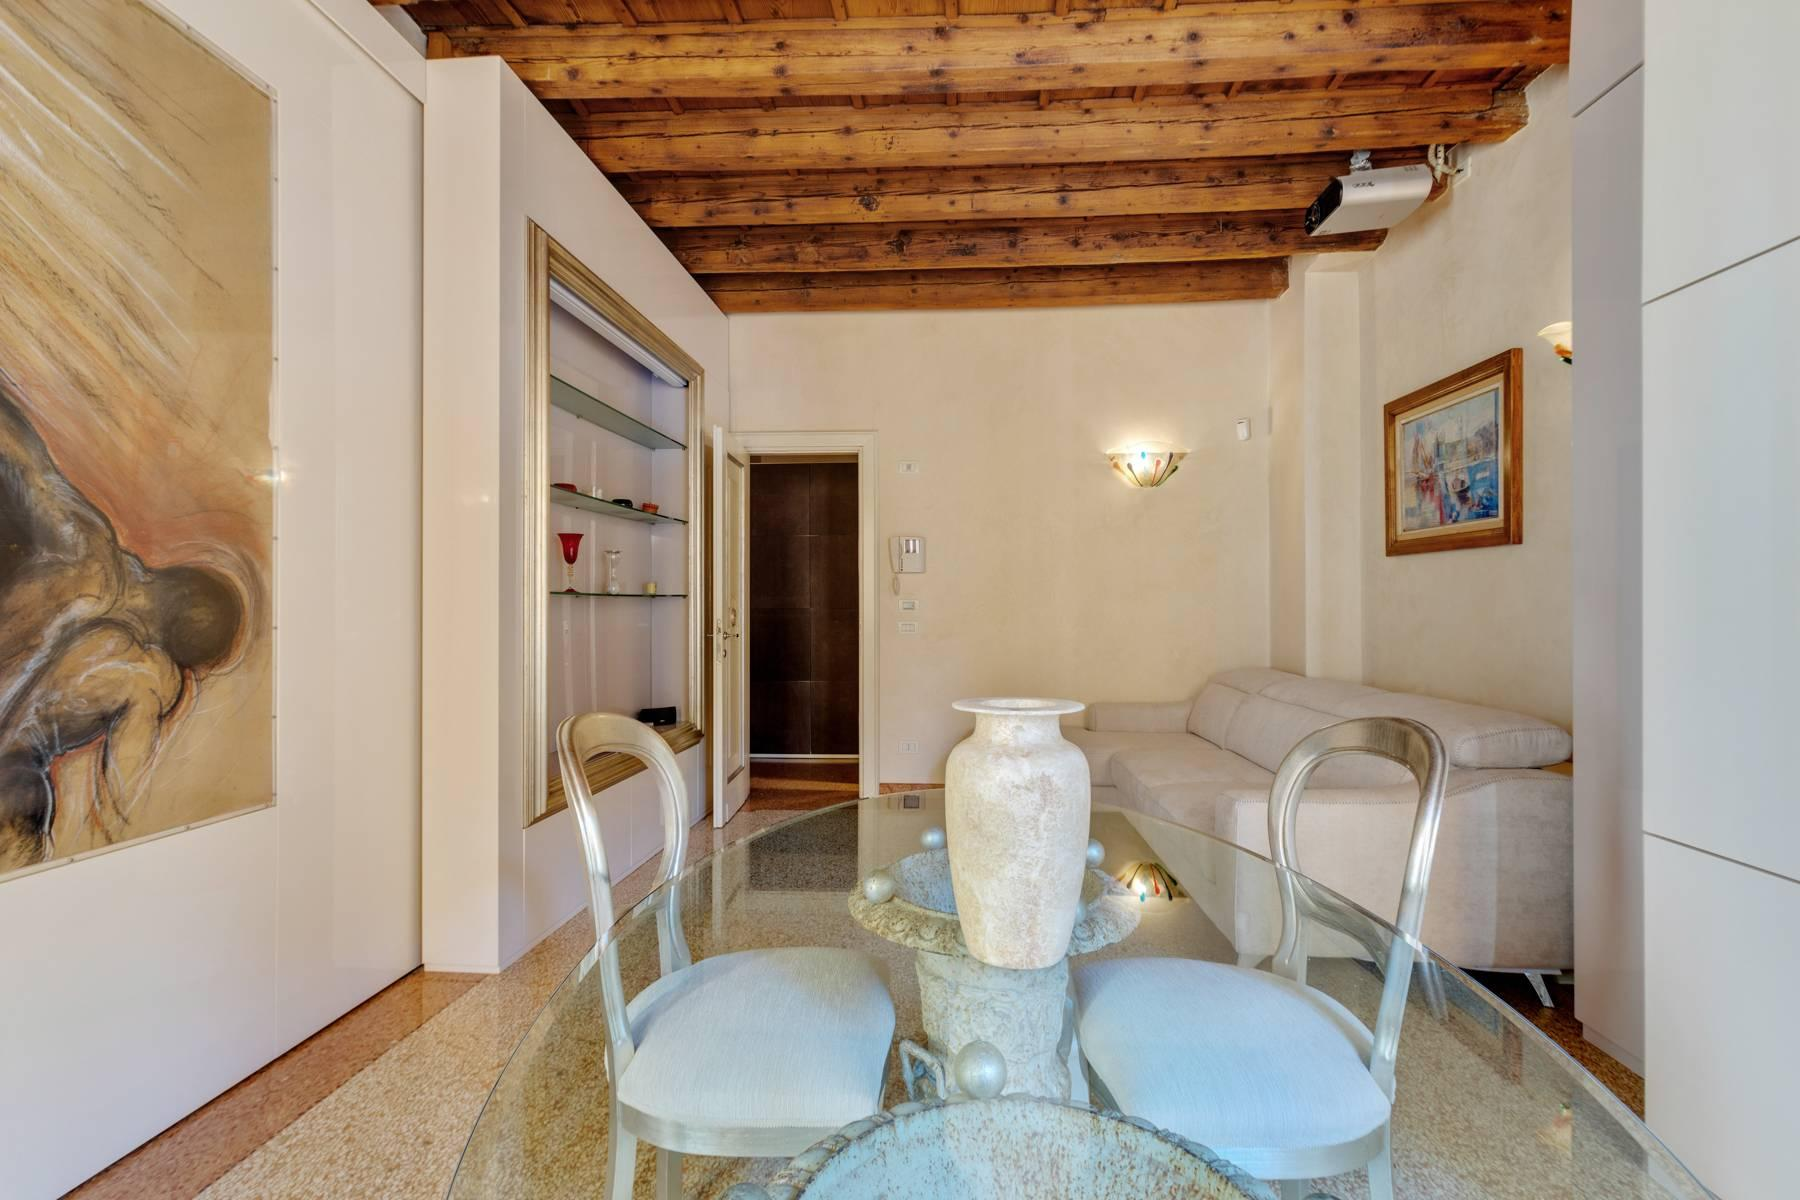 Exquisite apartment just few steps away from Piazza delle Erbe - 18